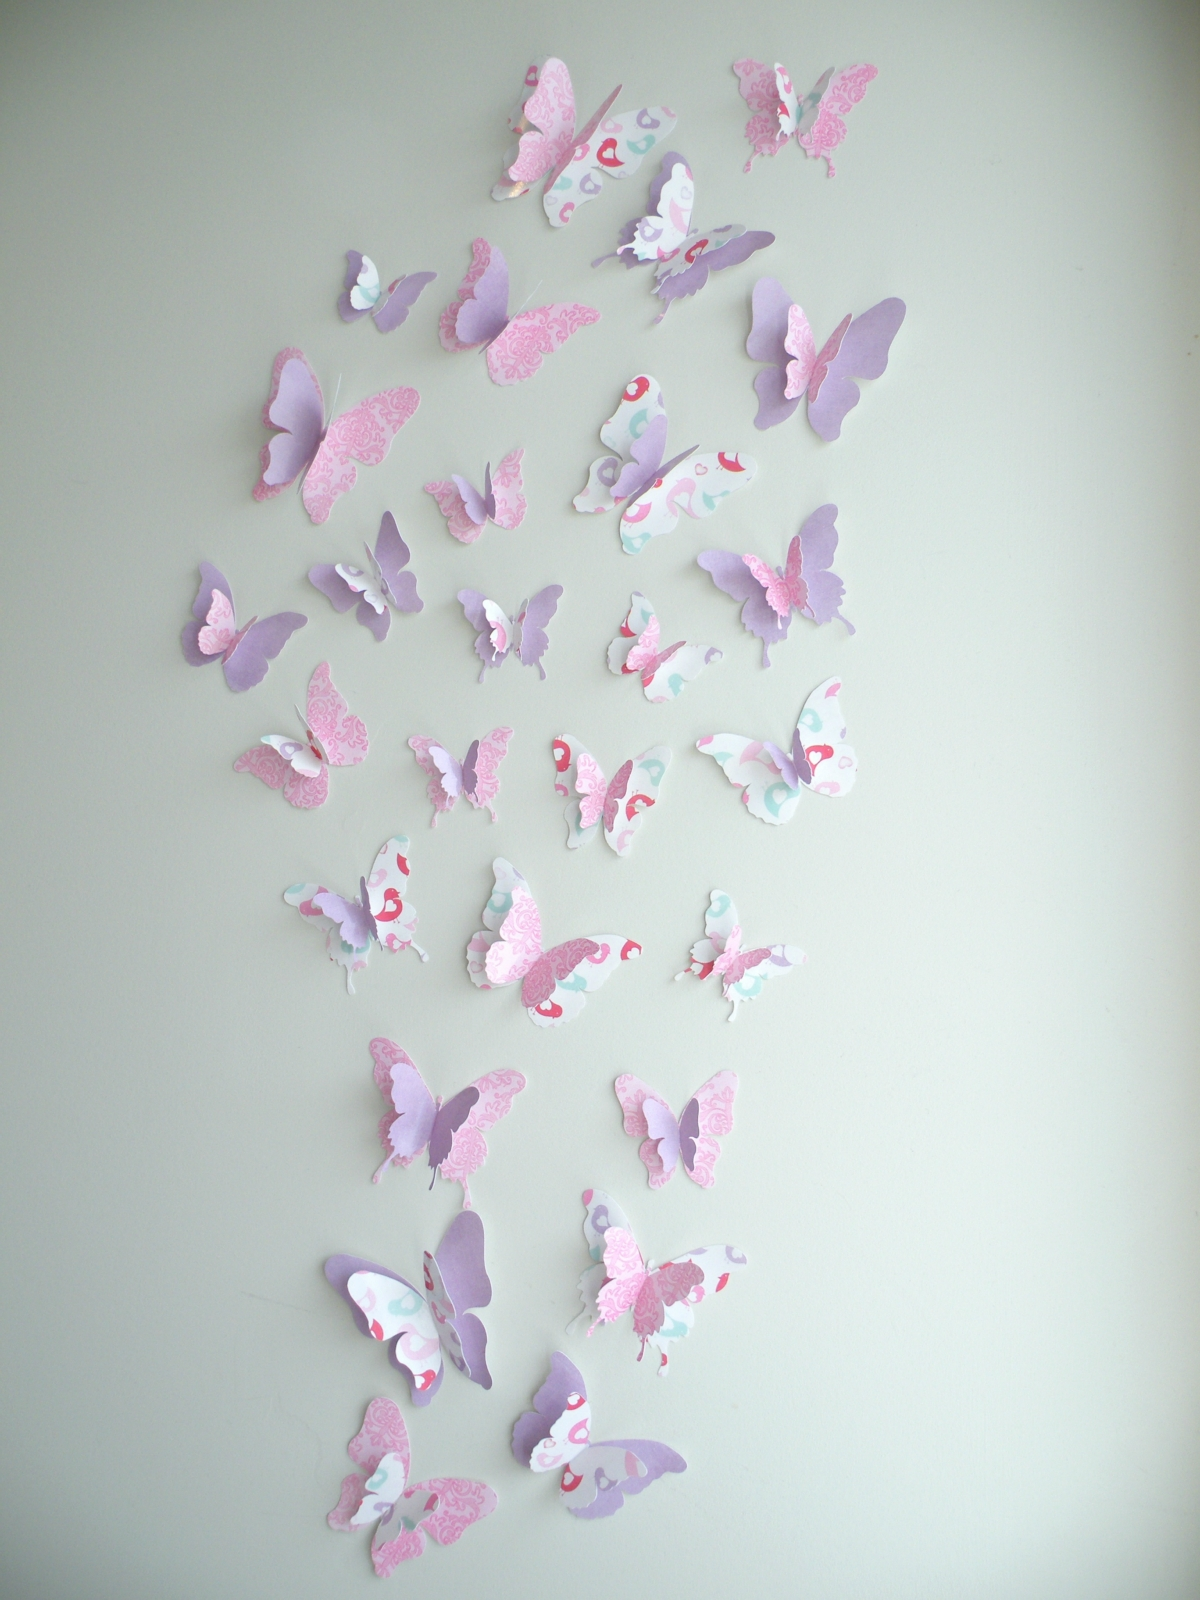 3d Butterfly Wall Decor Amarissa Set Felt